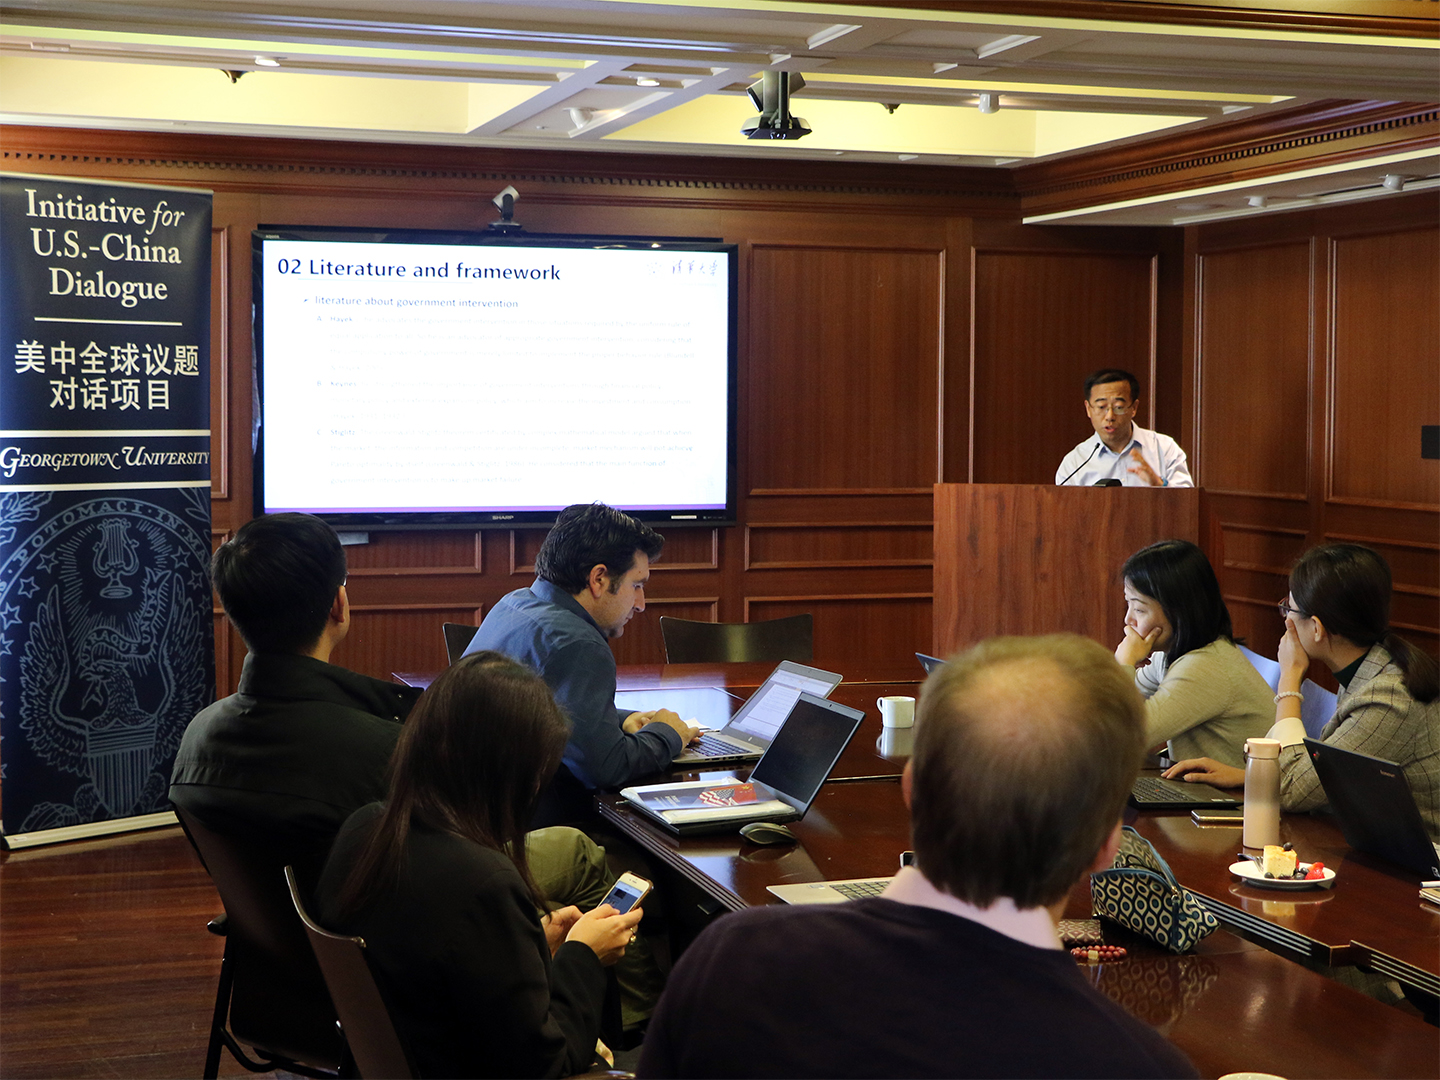 Liang Zheng sharing his research with the group